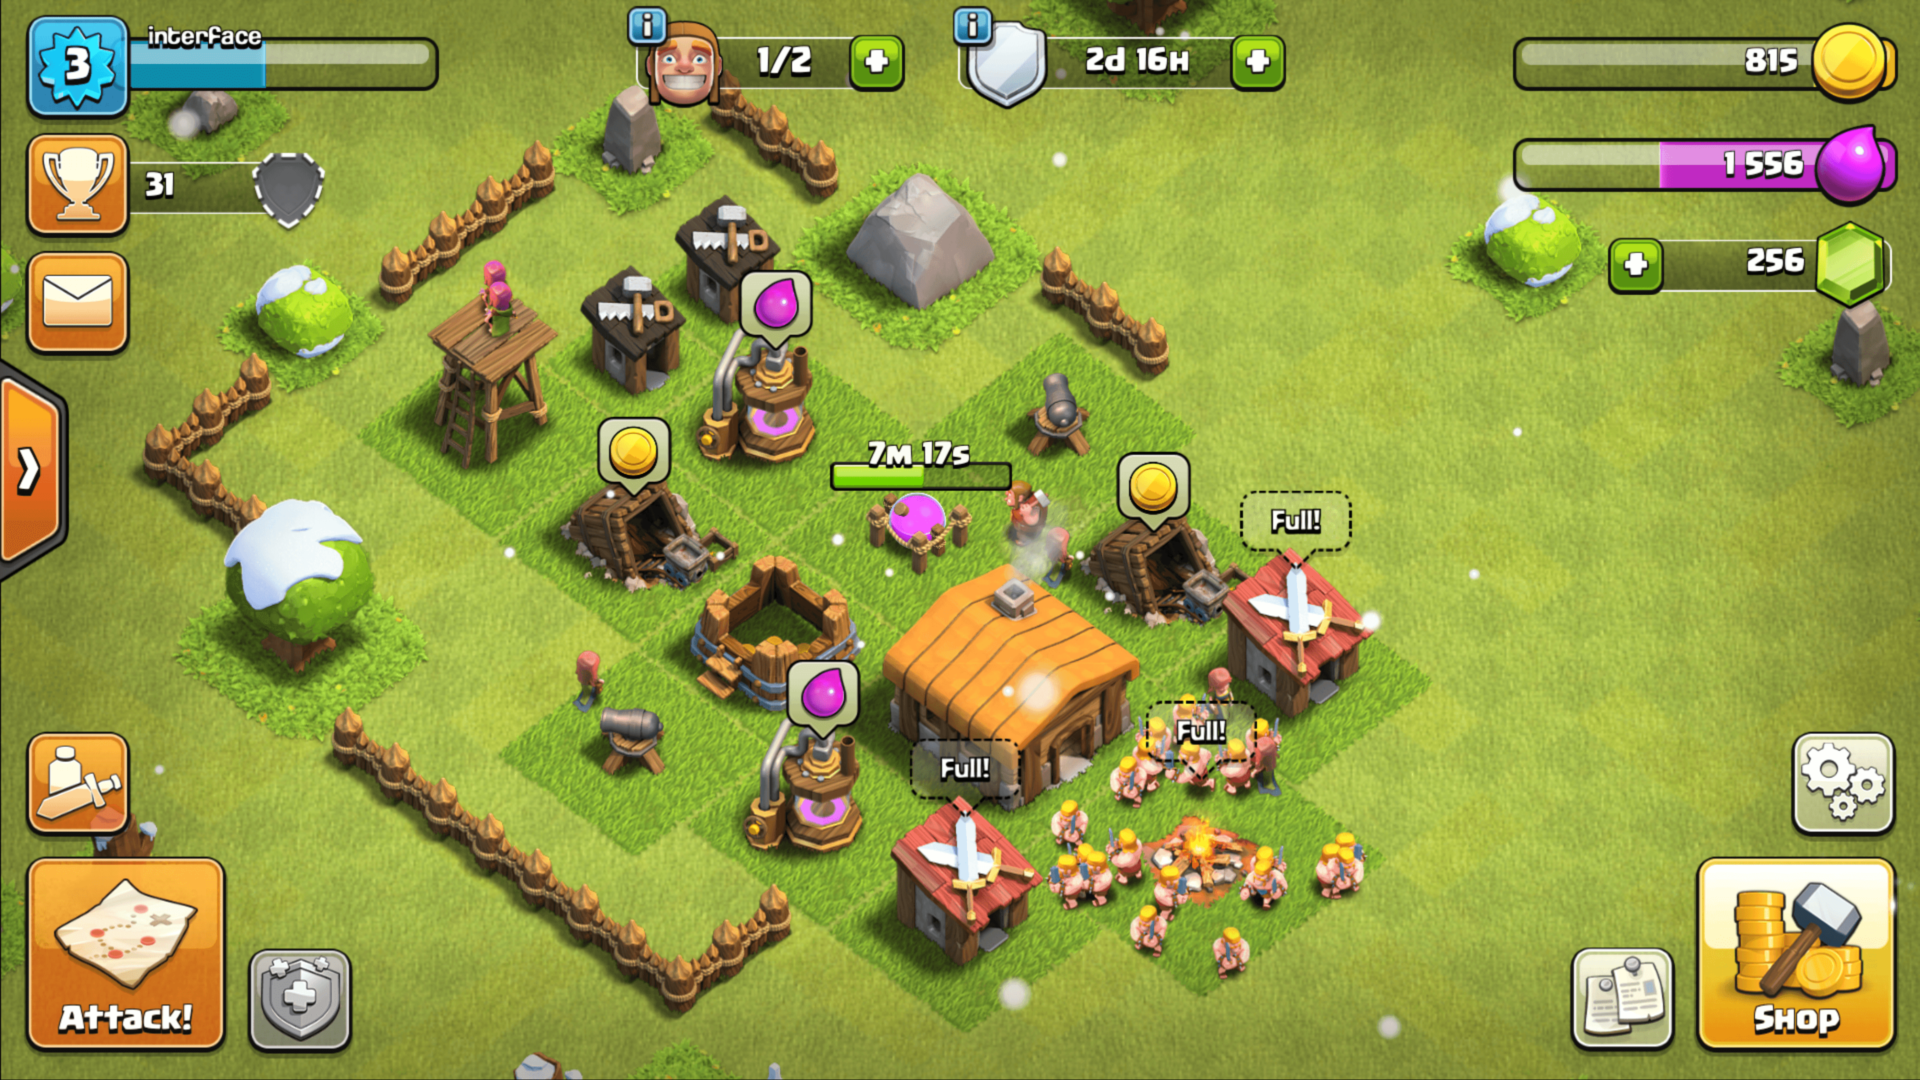 Collect resources screenshot of Clash of Clans video game interface.